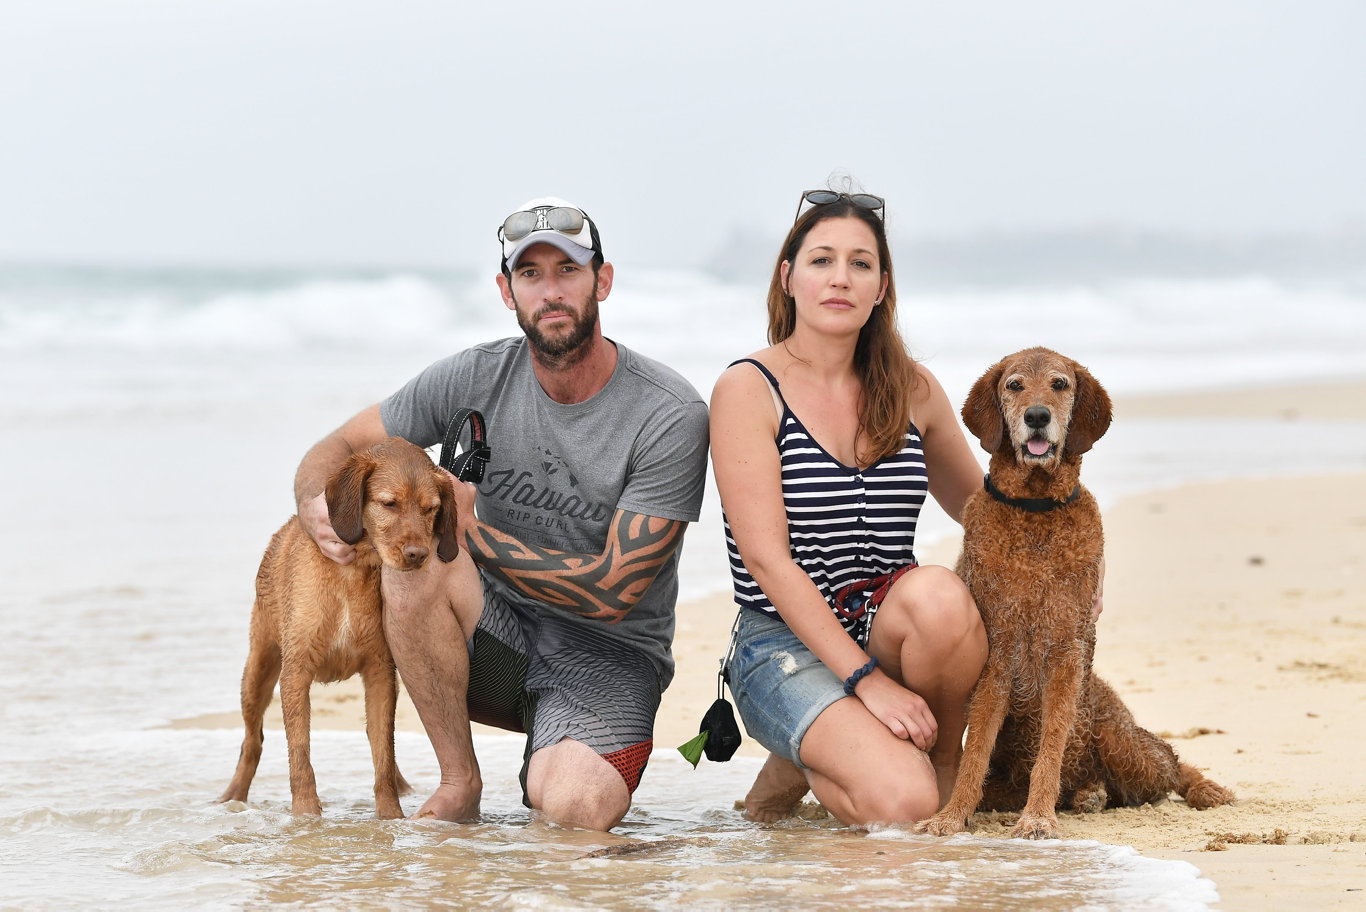 Imbi Tonisson and Jarrad Finlayson started a petition to oppose the removal of the off leash area at Bokarina Beach between access 245 and 247. Pictured with their dogs Ollie and Luna. Photo Patrick Woods / Sunshine Coast Daily.